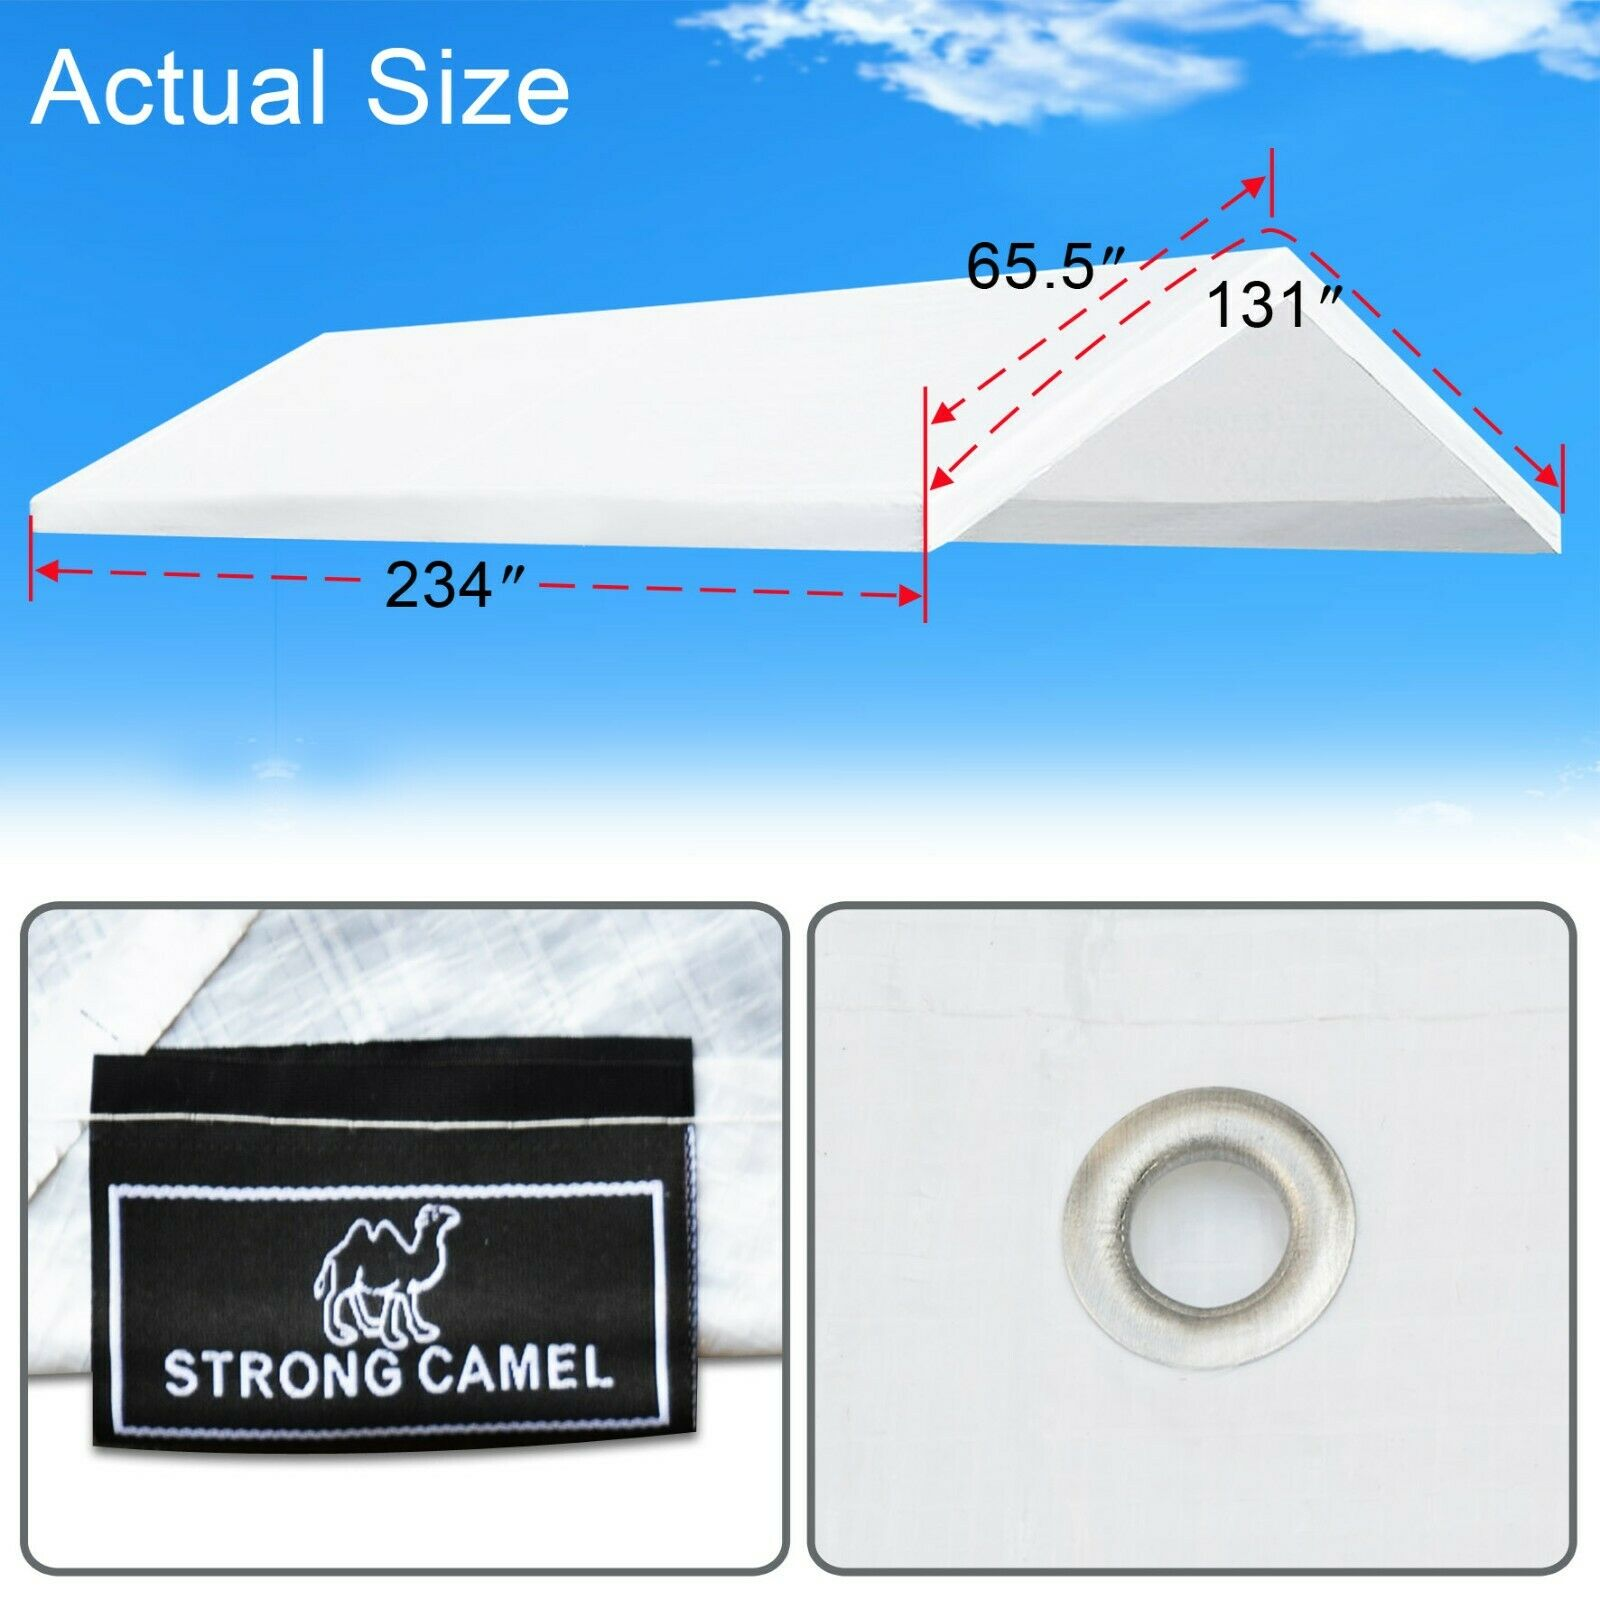 10X20\' CARPORT REPLACMENT Canopy Tent Top Garage Cover w Ball ...